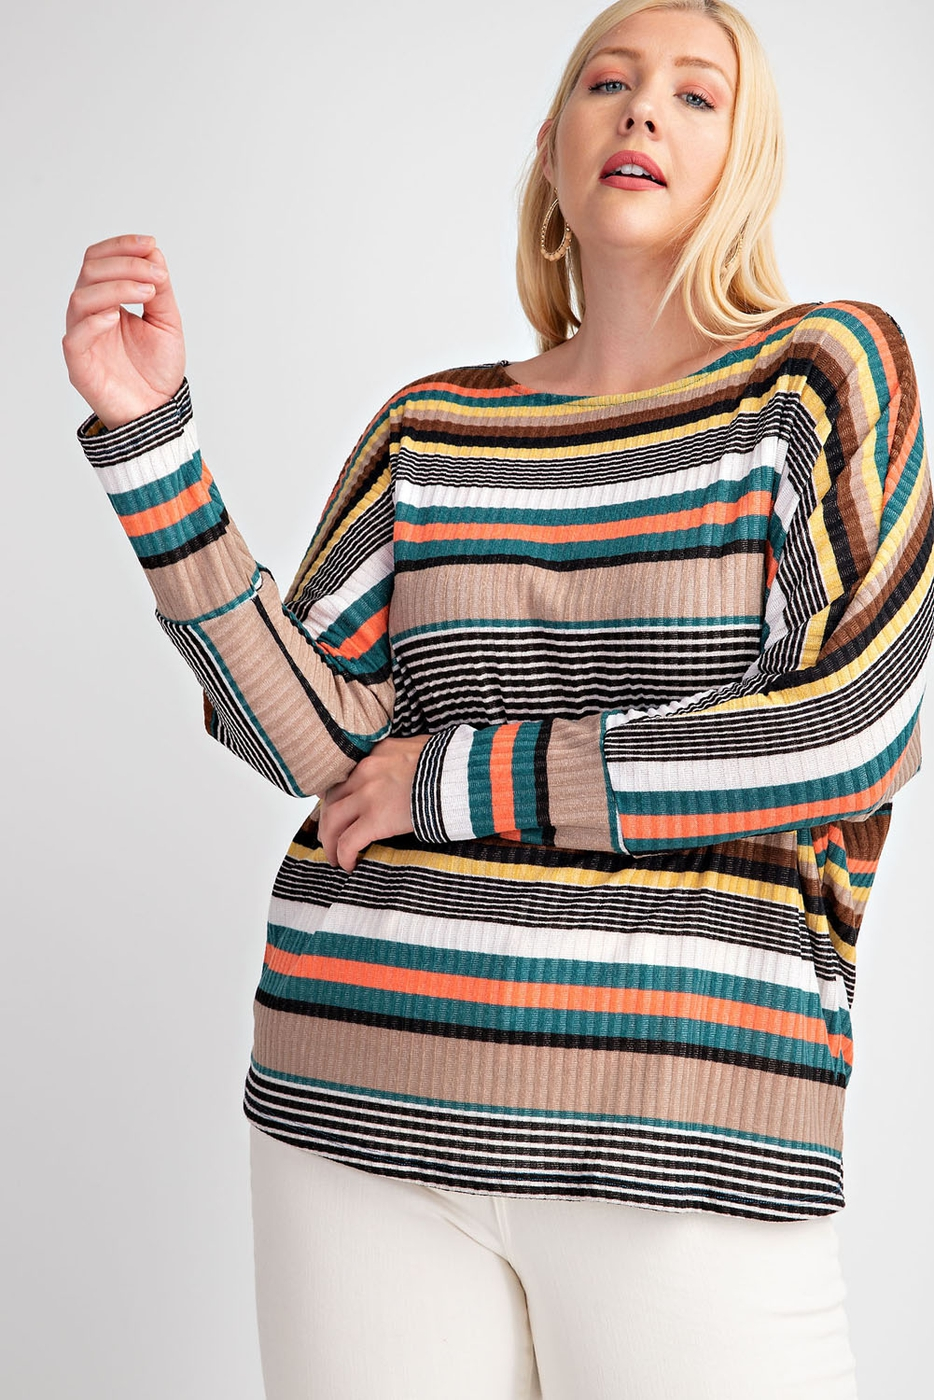 PLUS SIZE DOLMAN MULTI COLOR STRIPE  - orangeshine.com